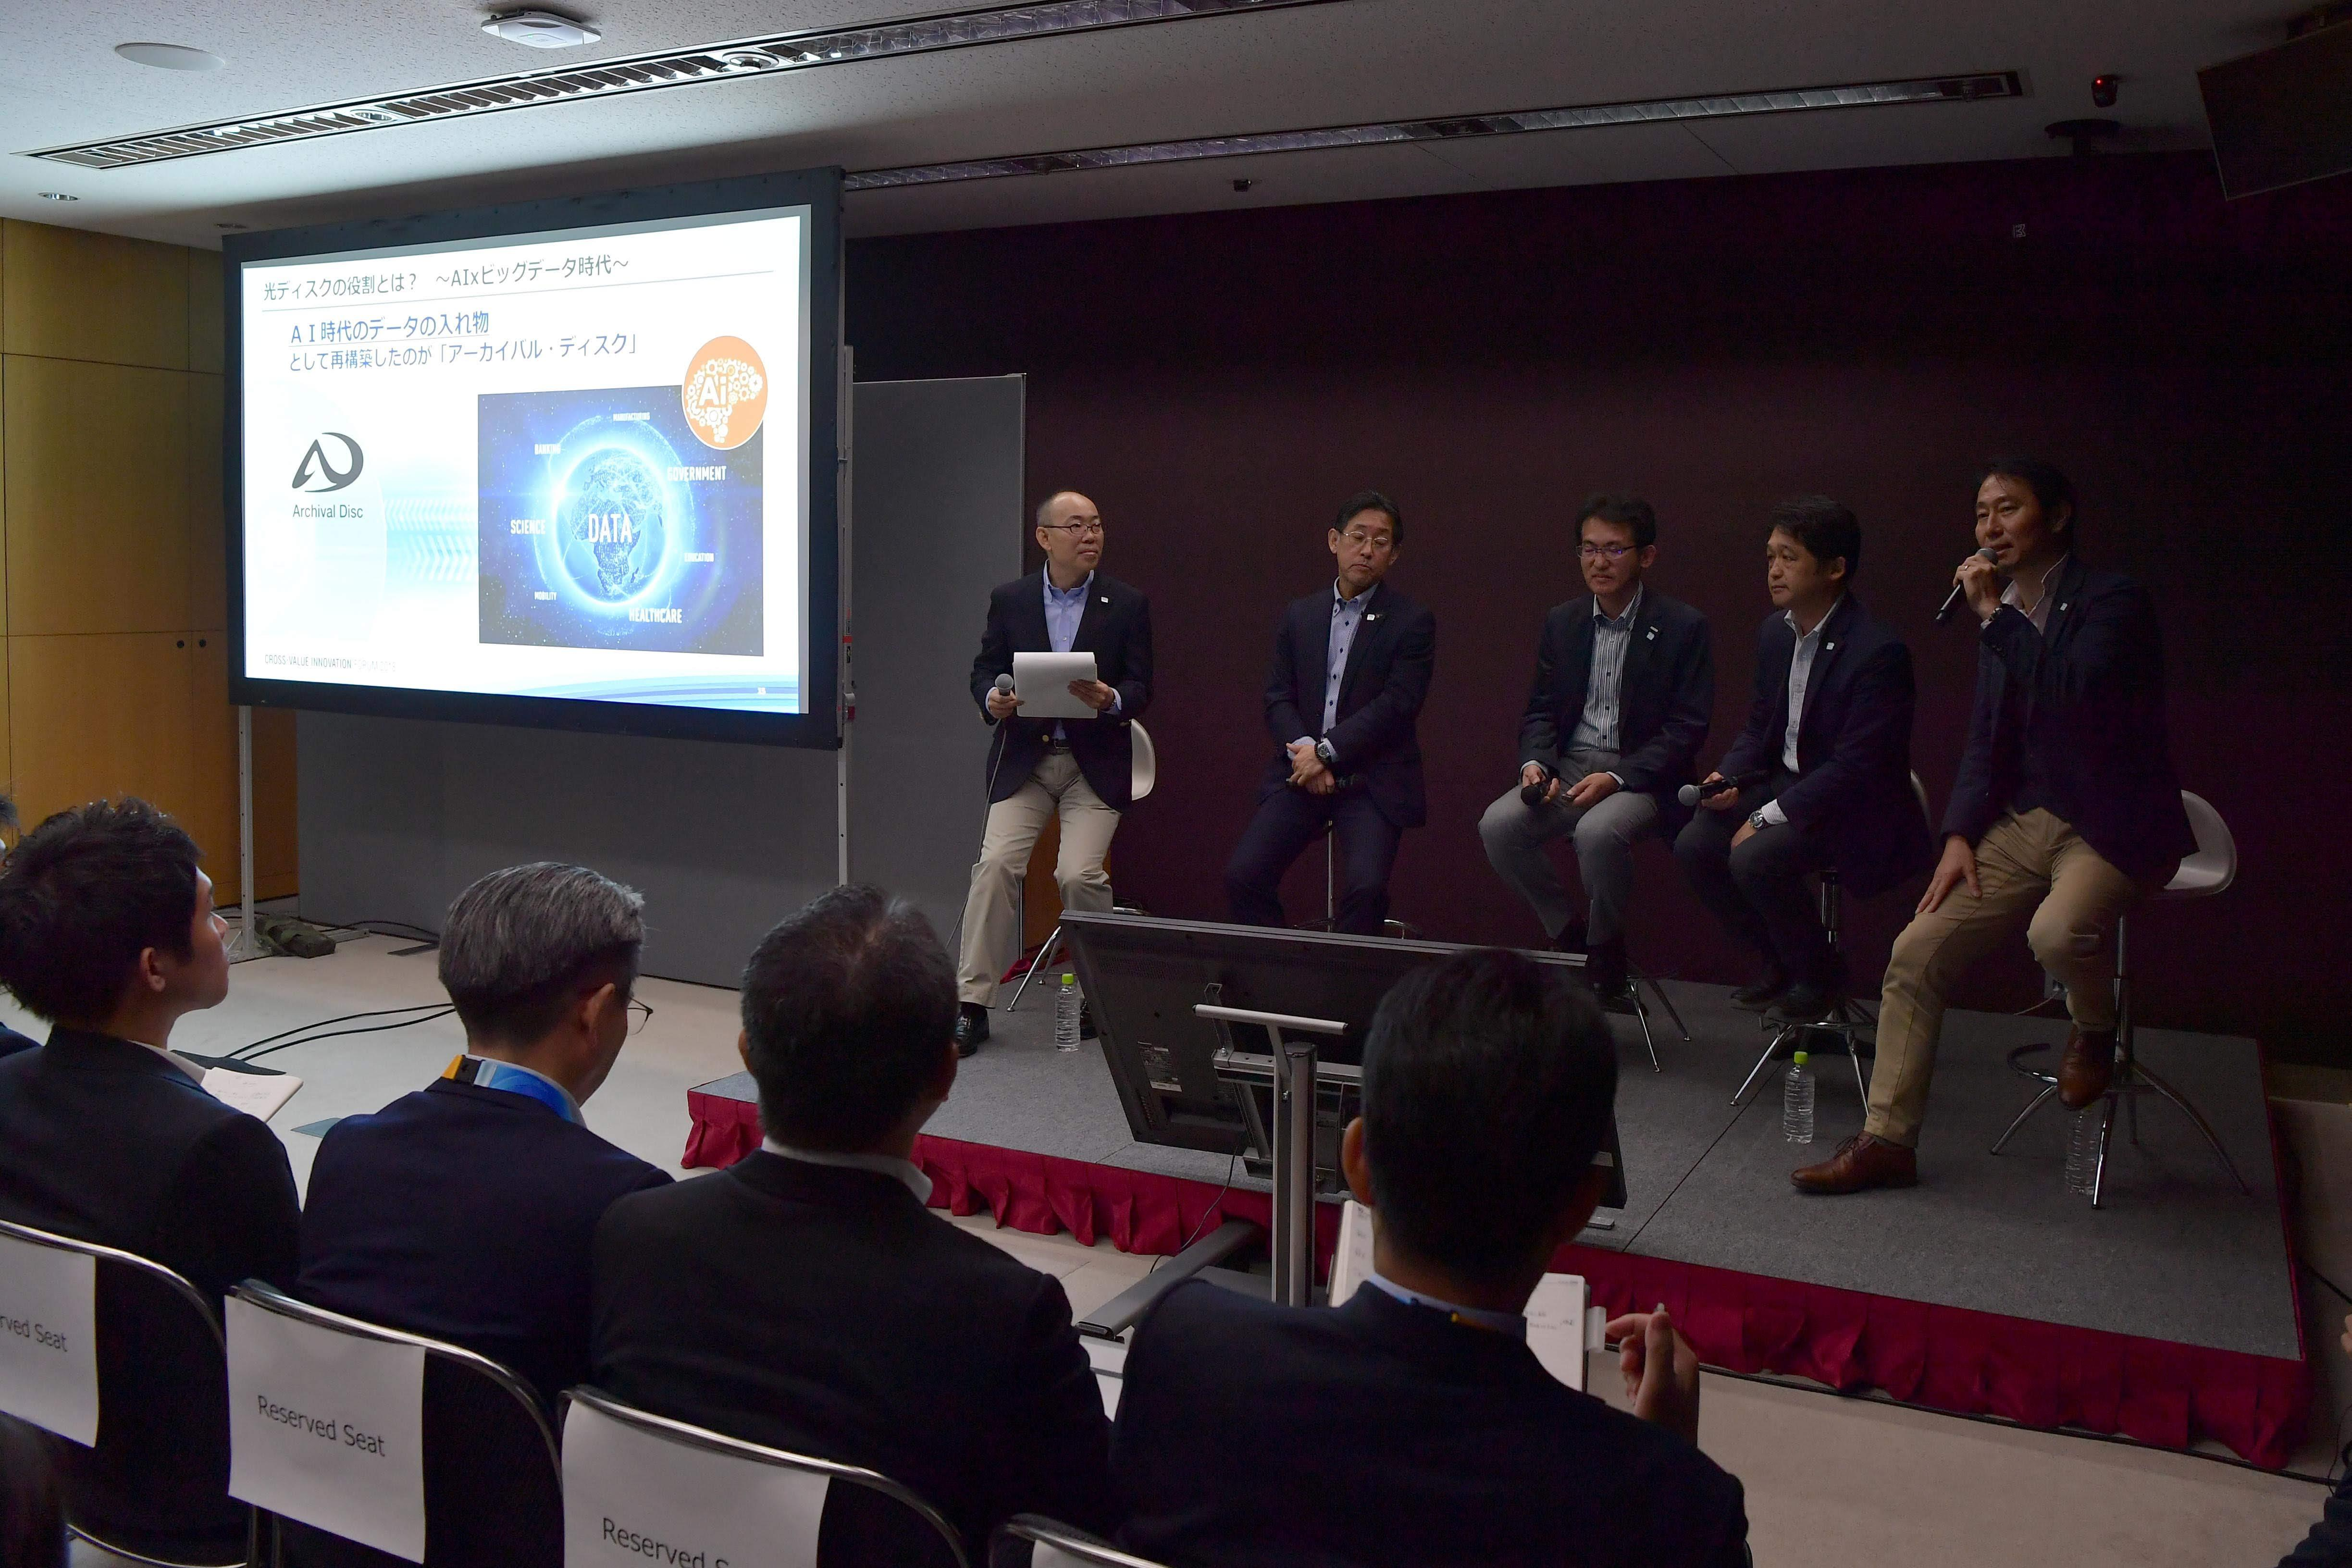 Seminar: The Technical Innovation of Optical Disc Storage by Panasonic and Sony / 光ディスクストレージの技術革新